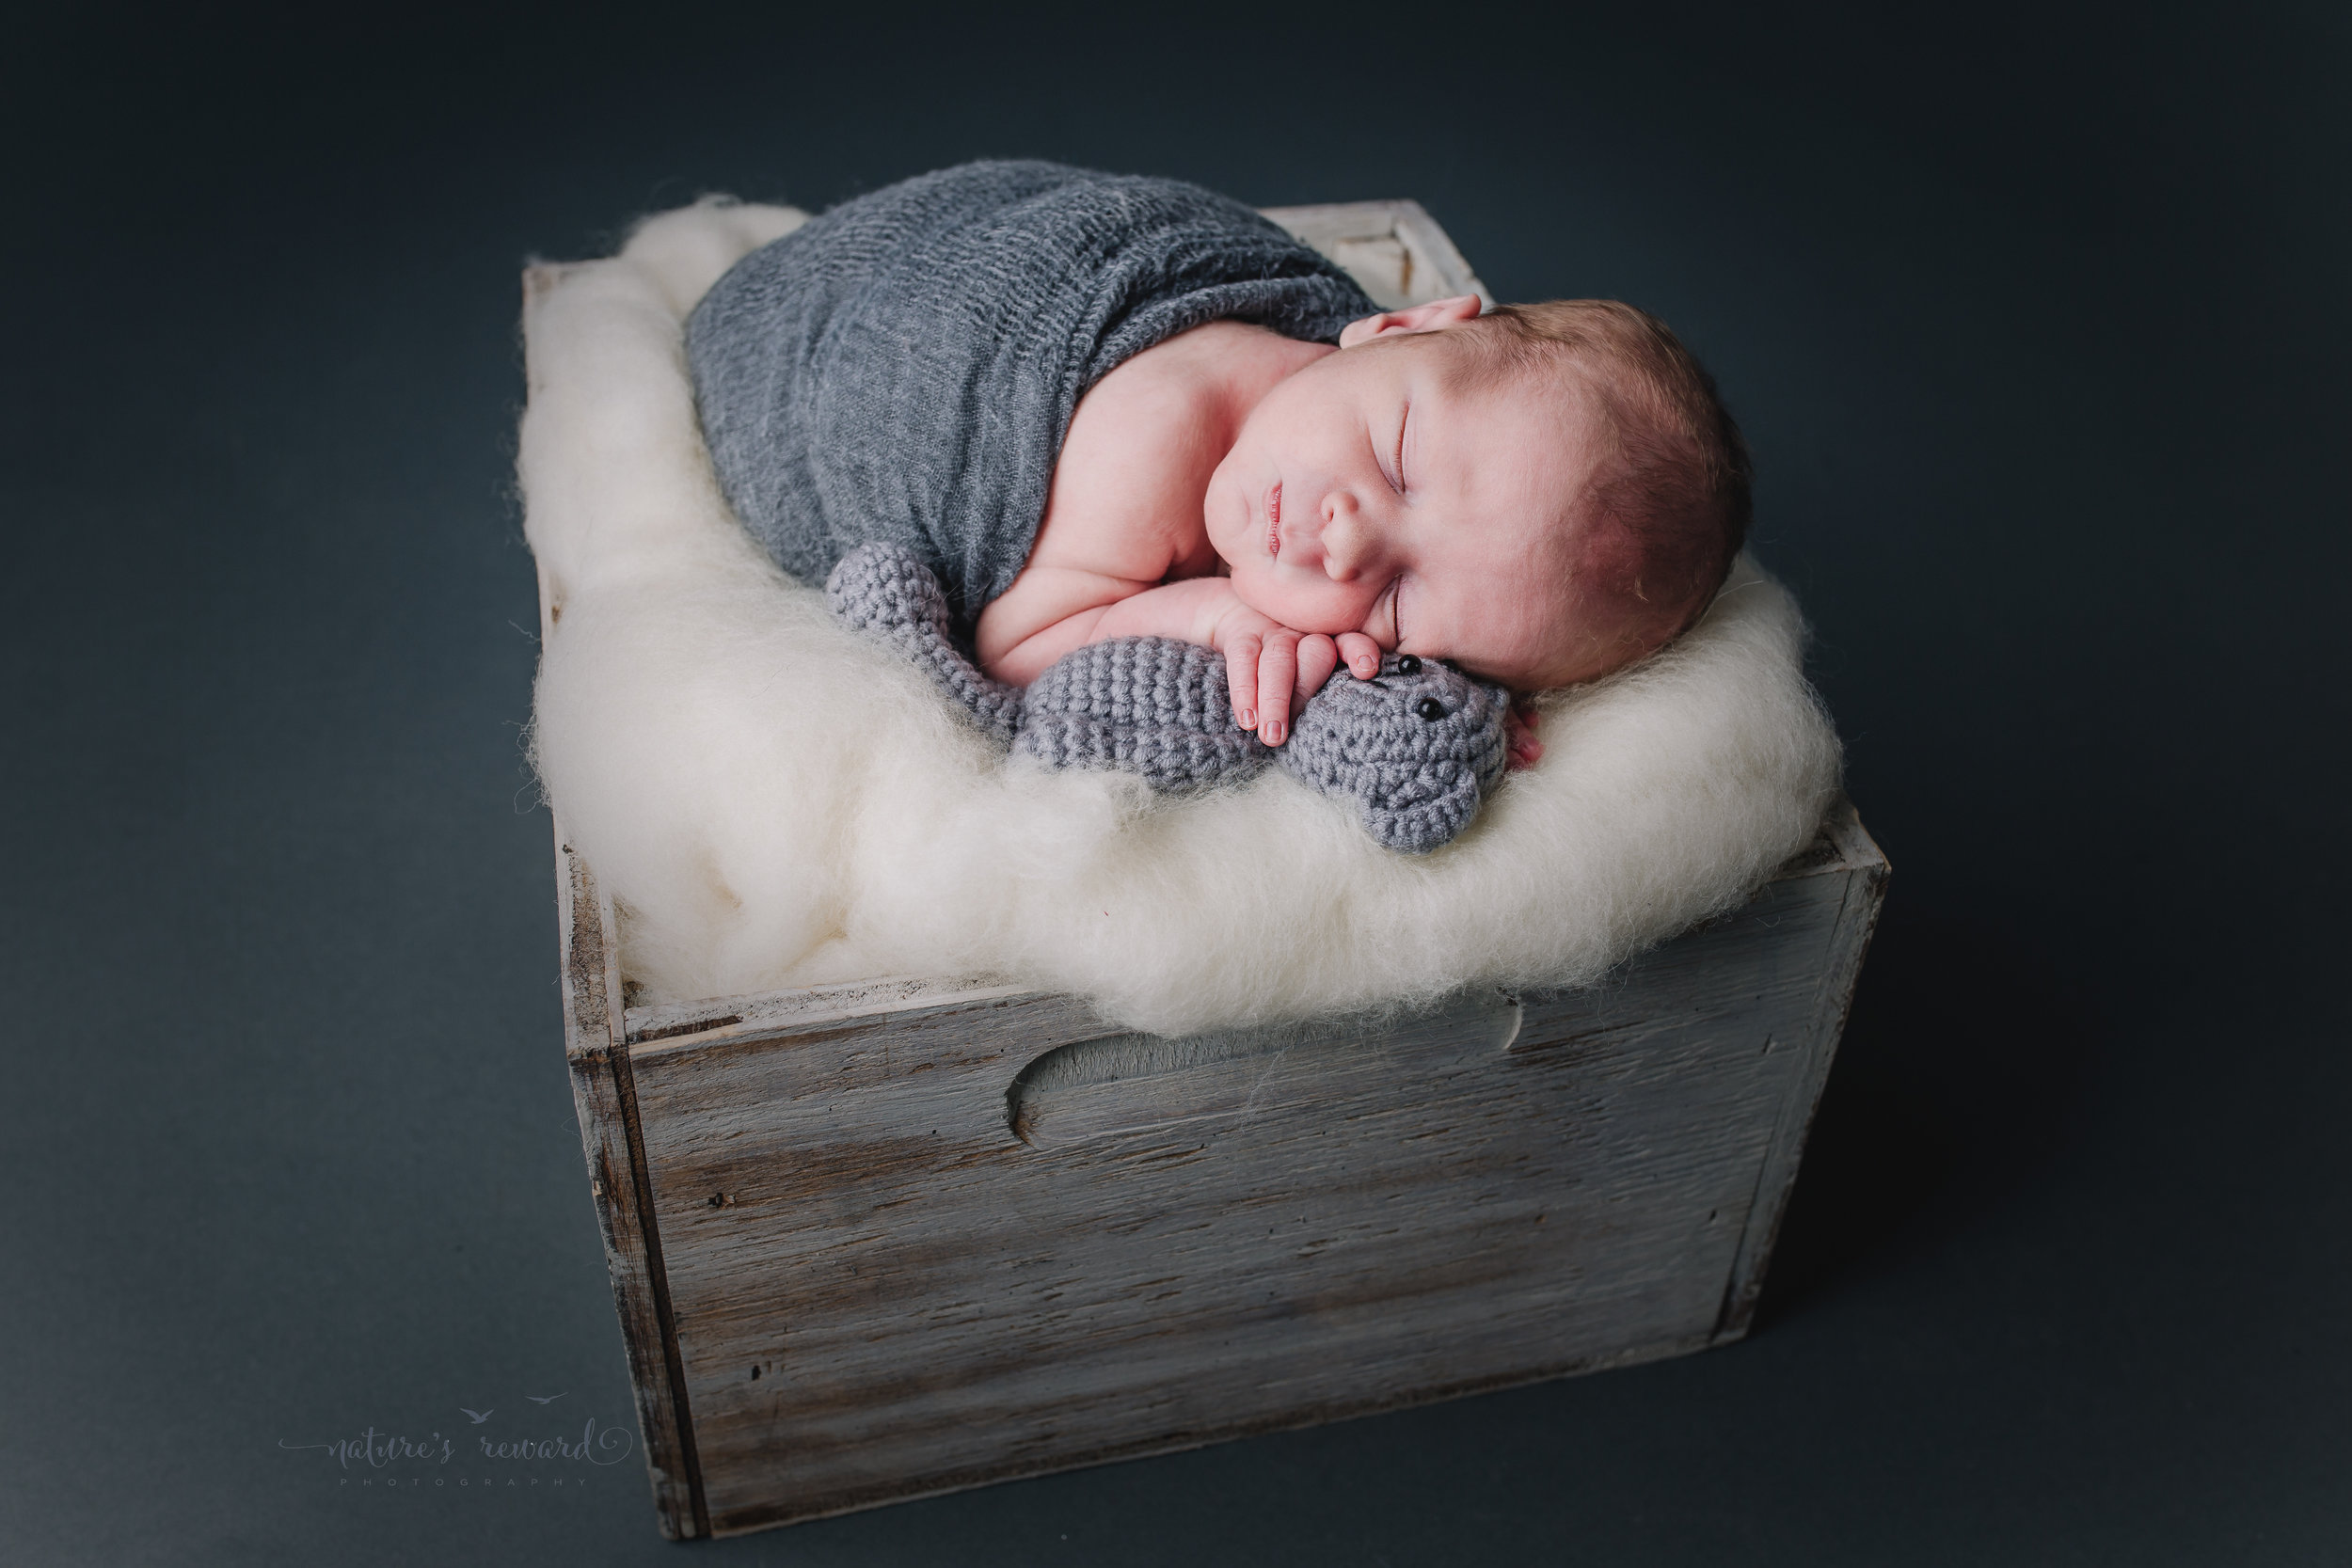 Such a handsome man holding this delightful teddy mom brought in while laying in this box full of stuffing! A newborn portrait by Nature's Reward Photography